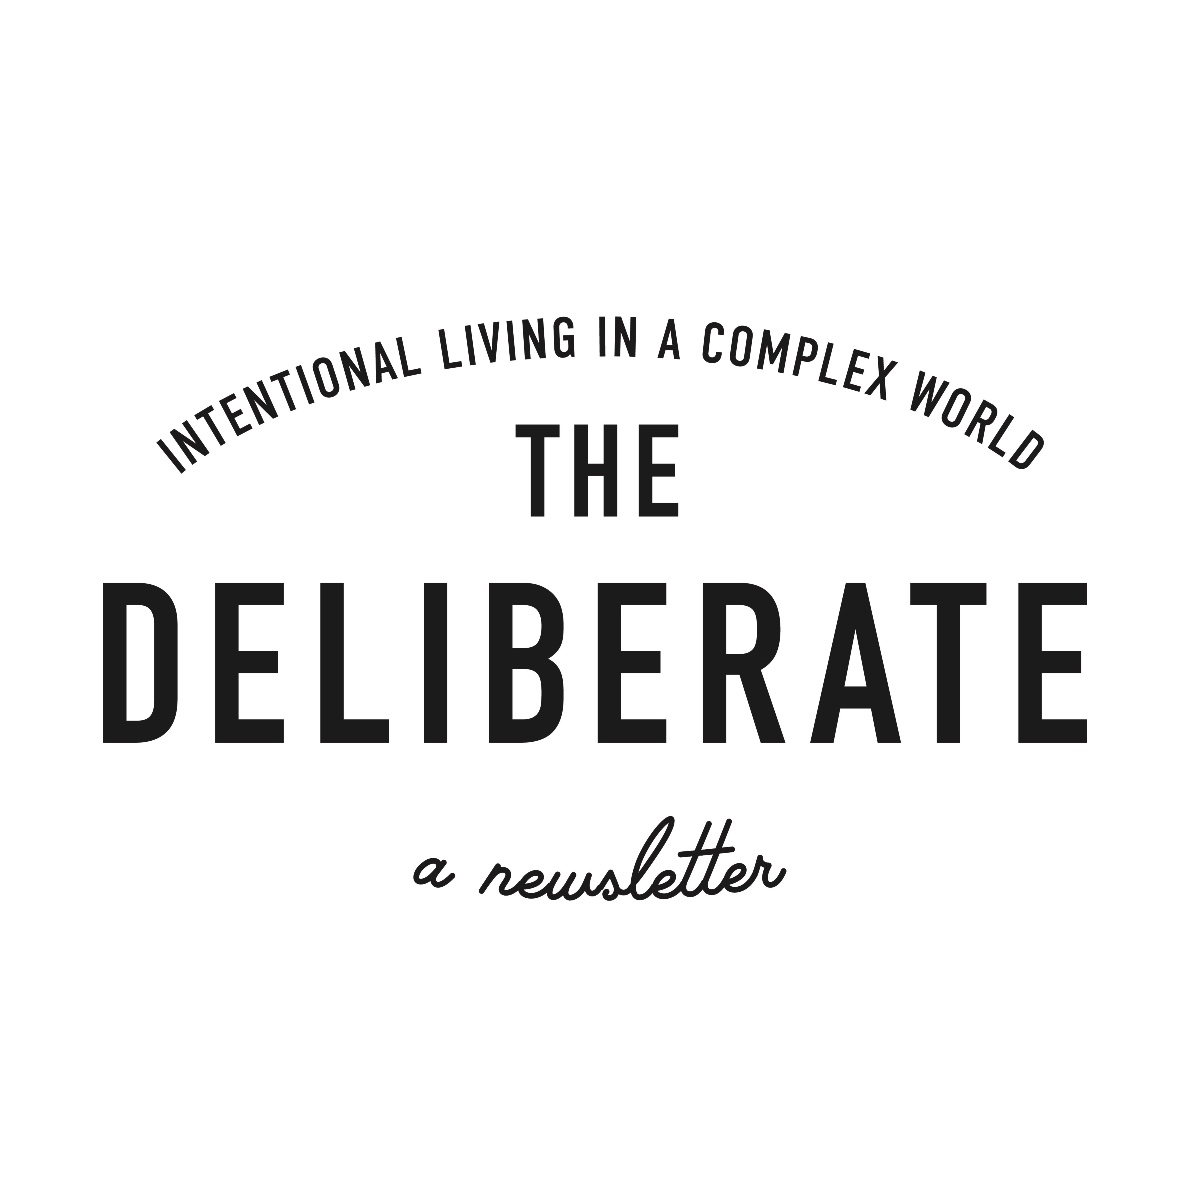 The Deliberate - The Deliberate is a weekly-ish newsletter that delves into attention and what it means to cultivate it, protect it, and generally treat it like the scarce resource that it is. A mix of ideas, links, and commentary guaranteed to get you thinking.